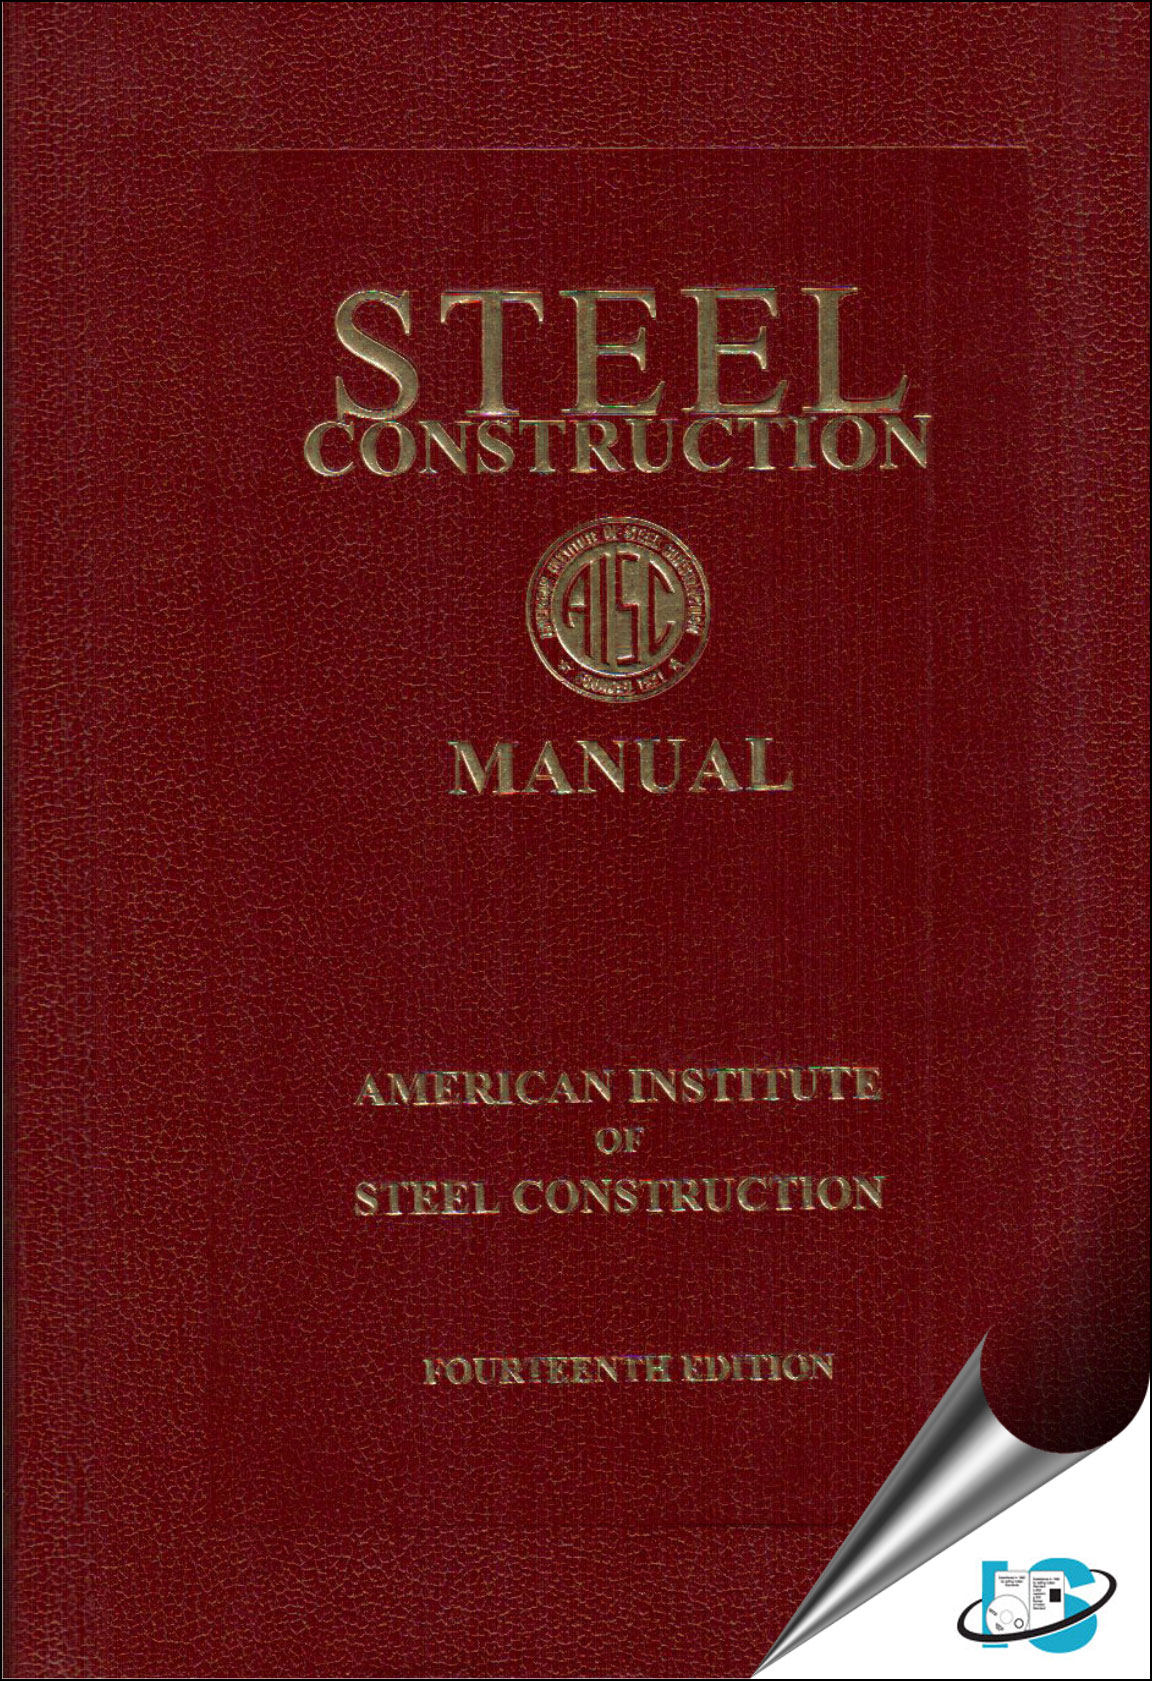 steel construction manual 14th edition aisc 1564240606 9781564240606 rh standardsmedia com 14th edition steel construction manual 14th edition steel construction manual